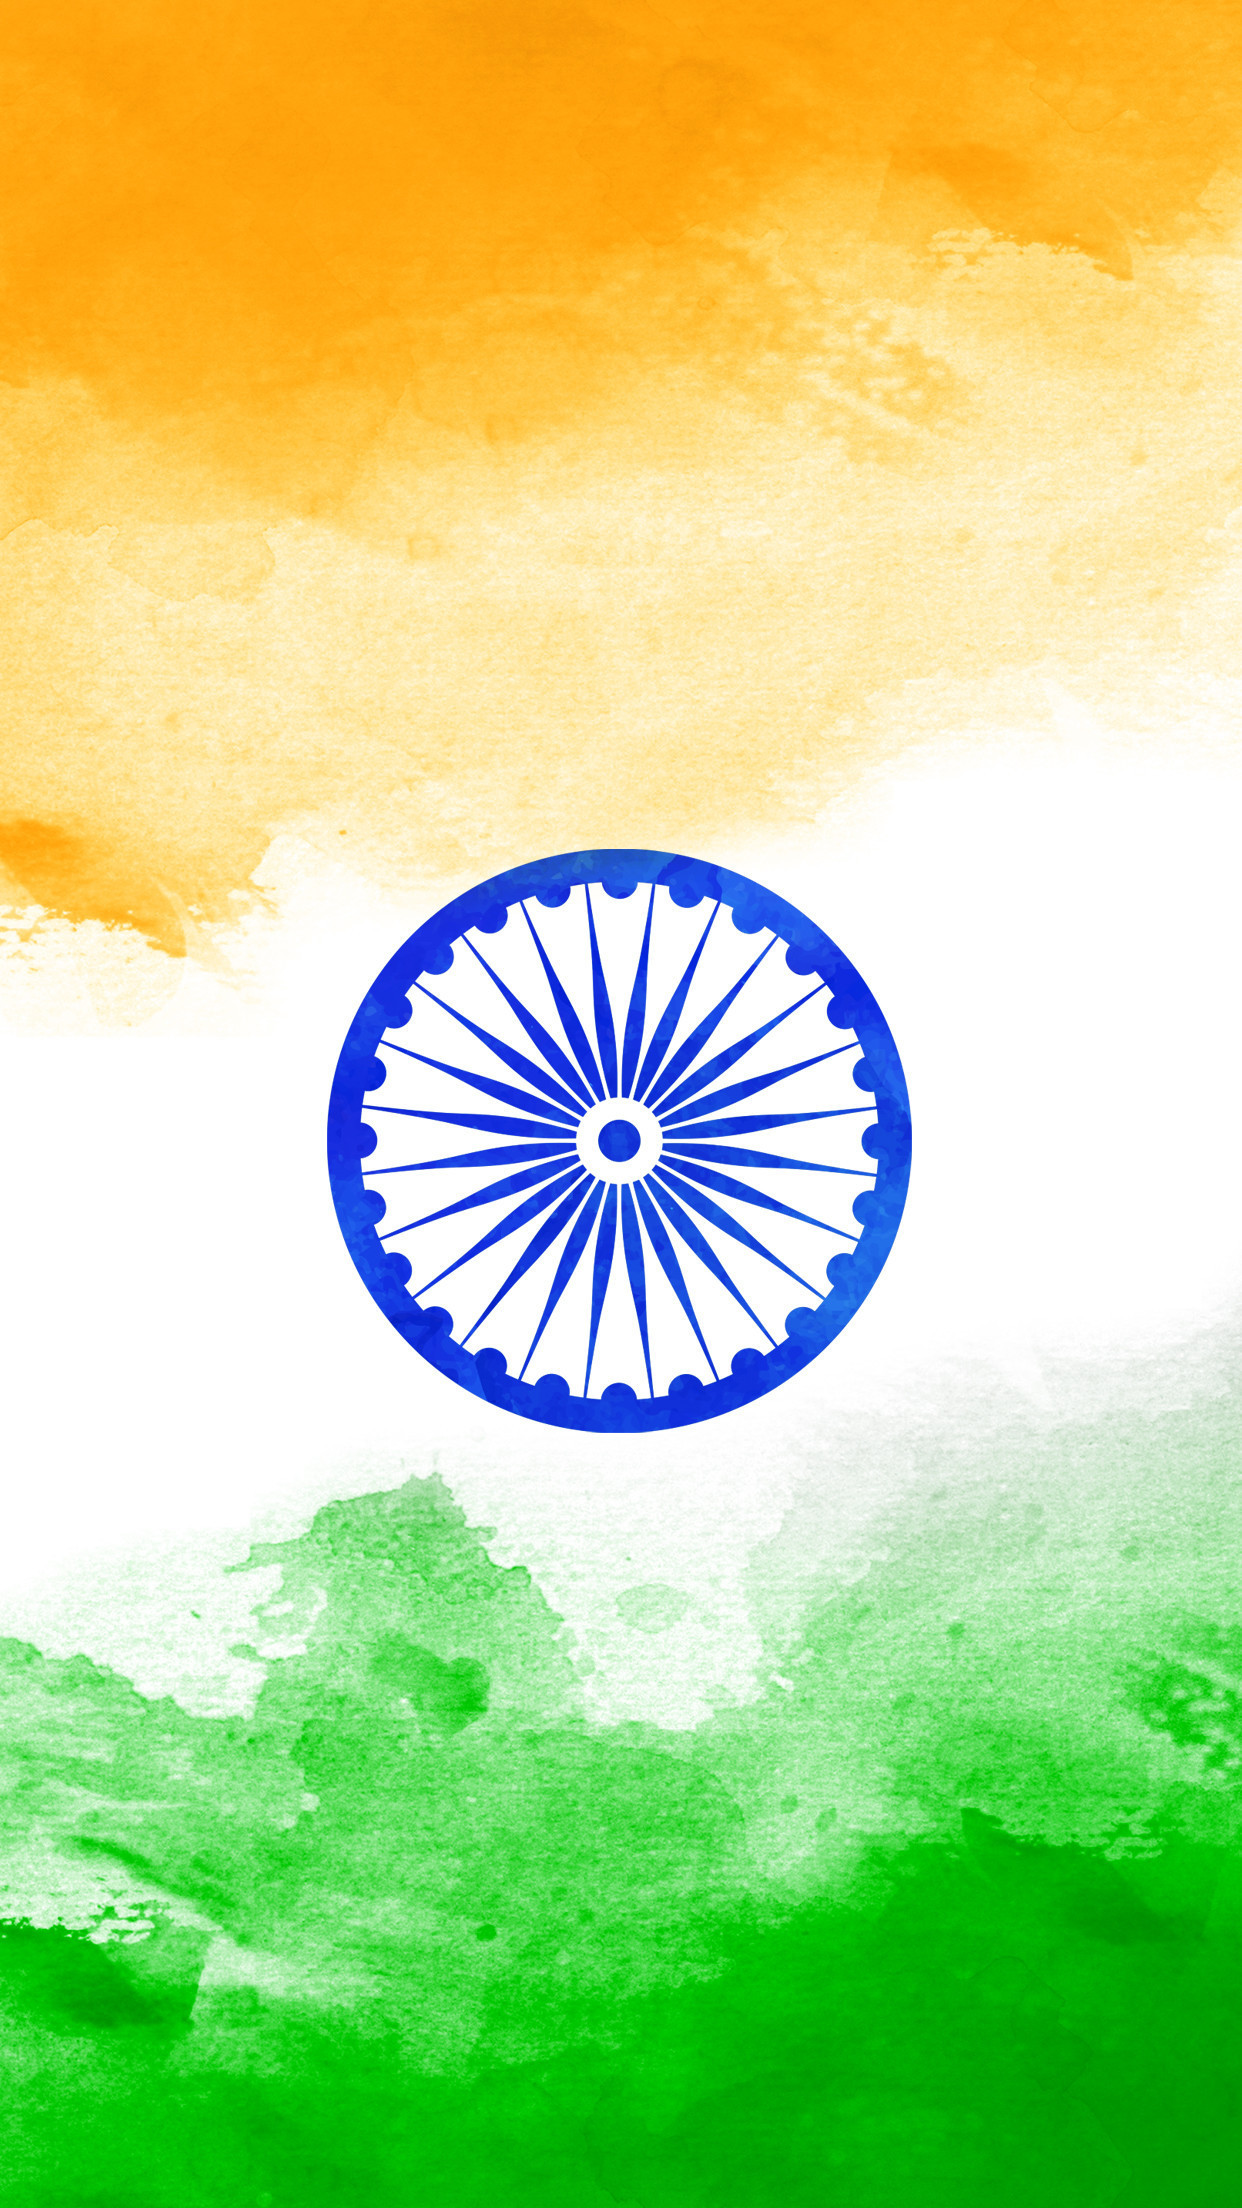 1242x2208 New Mobile Wallpaper 2018 Incredible Indian Flag Mobile Wallpaper 2018 ·①